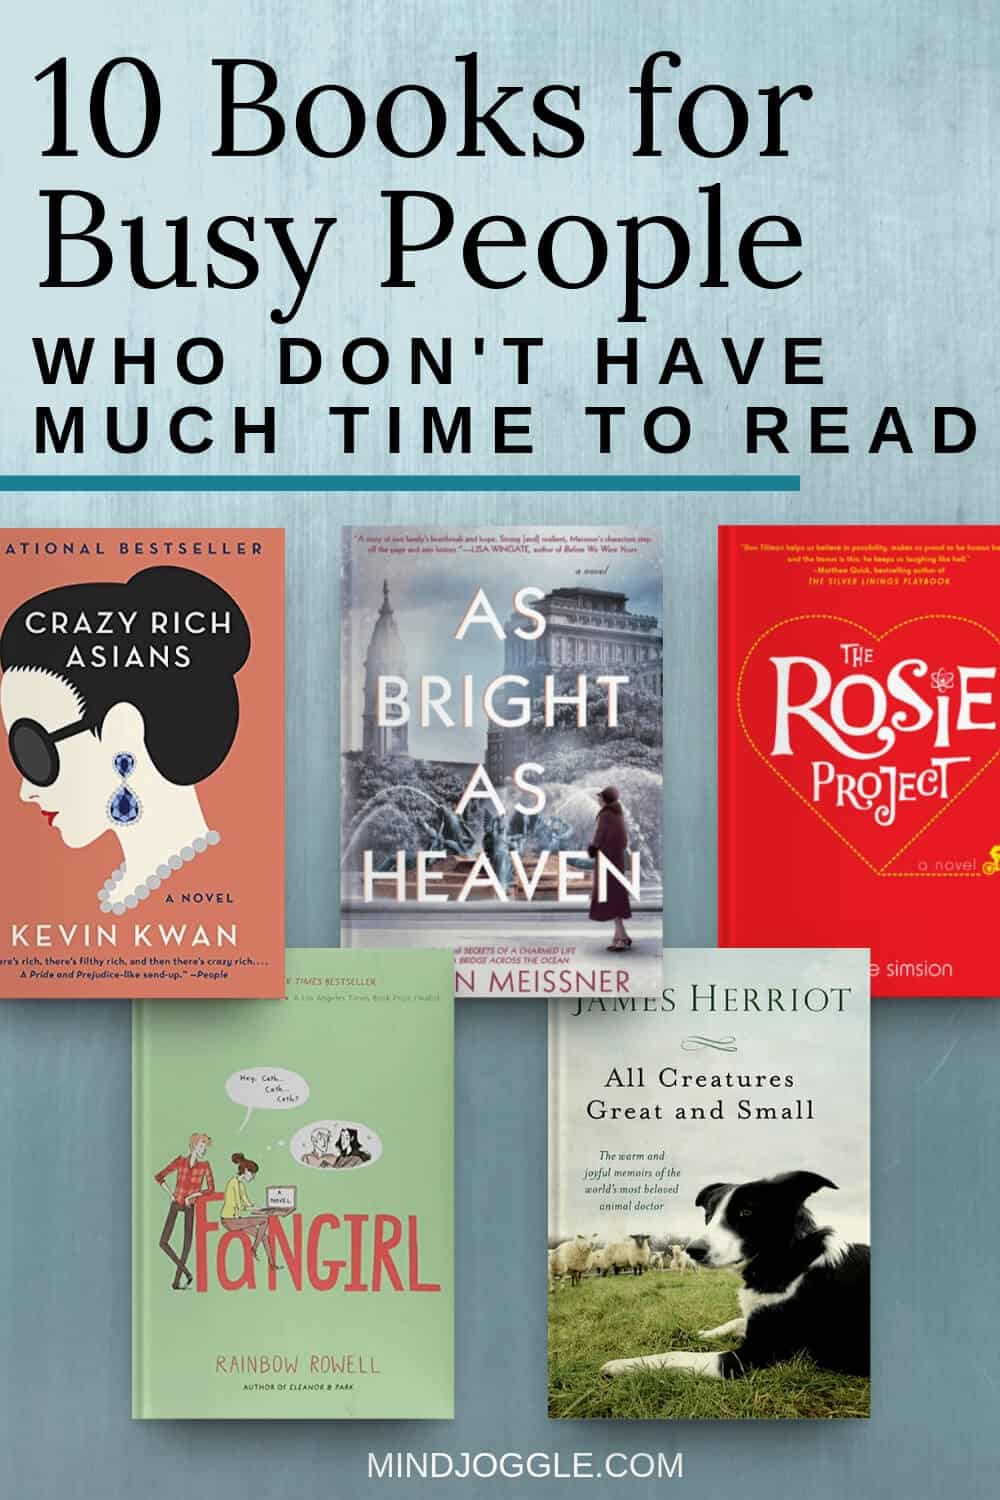 10 Books for Busy People Who Don't Have Much Time to Read